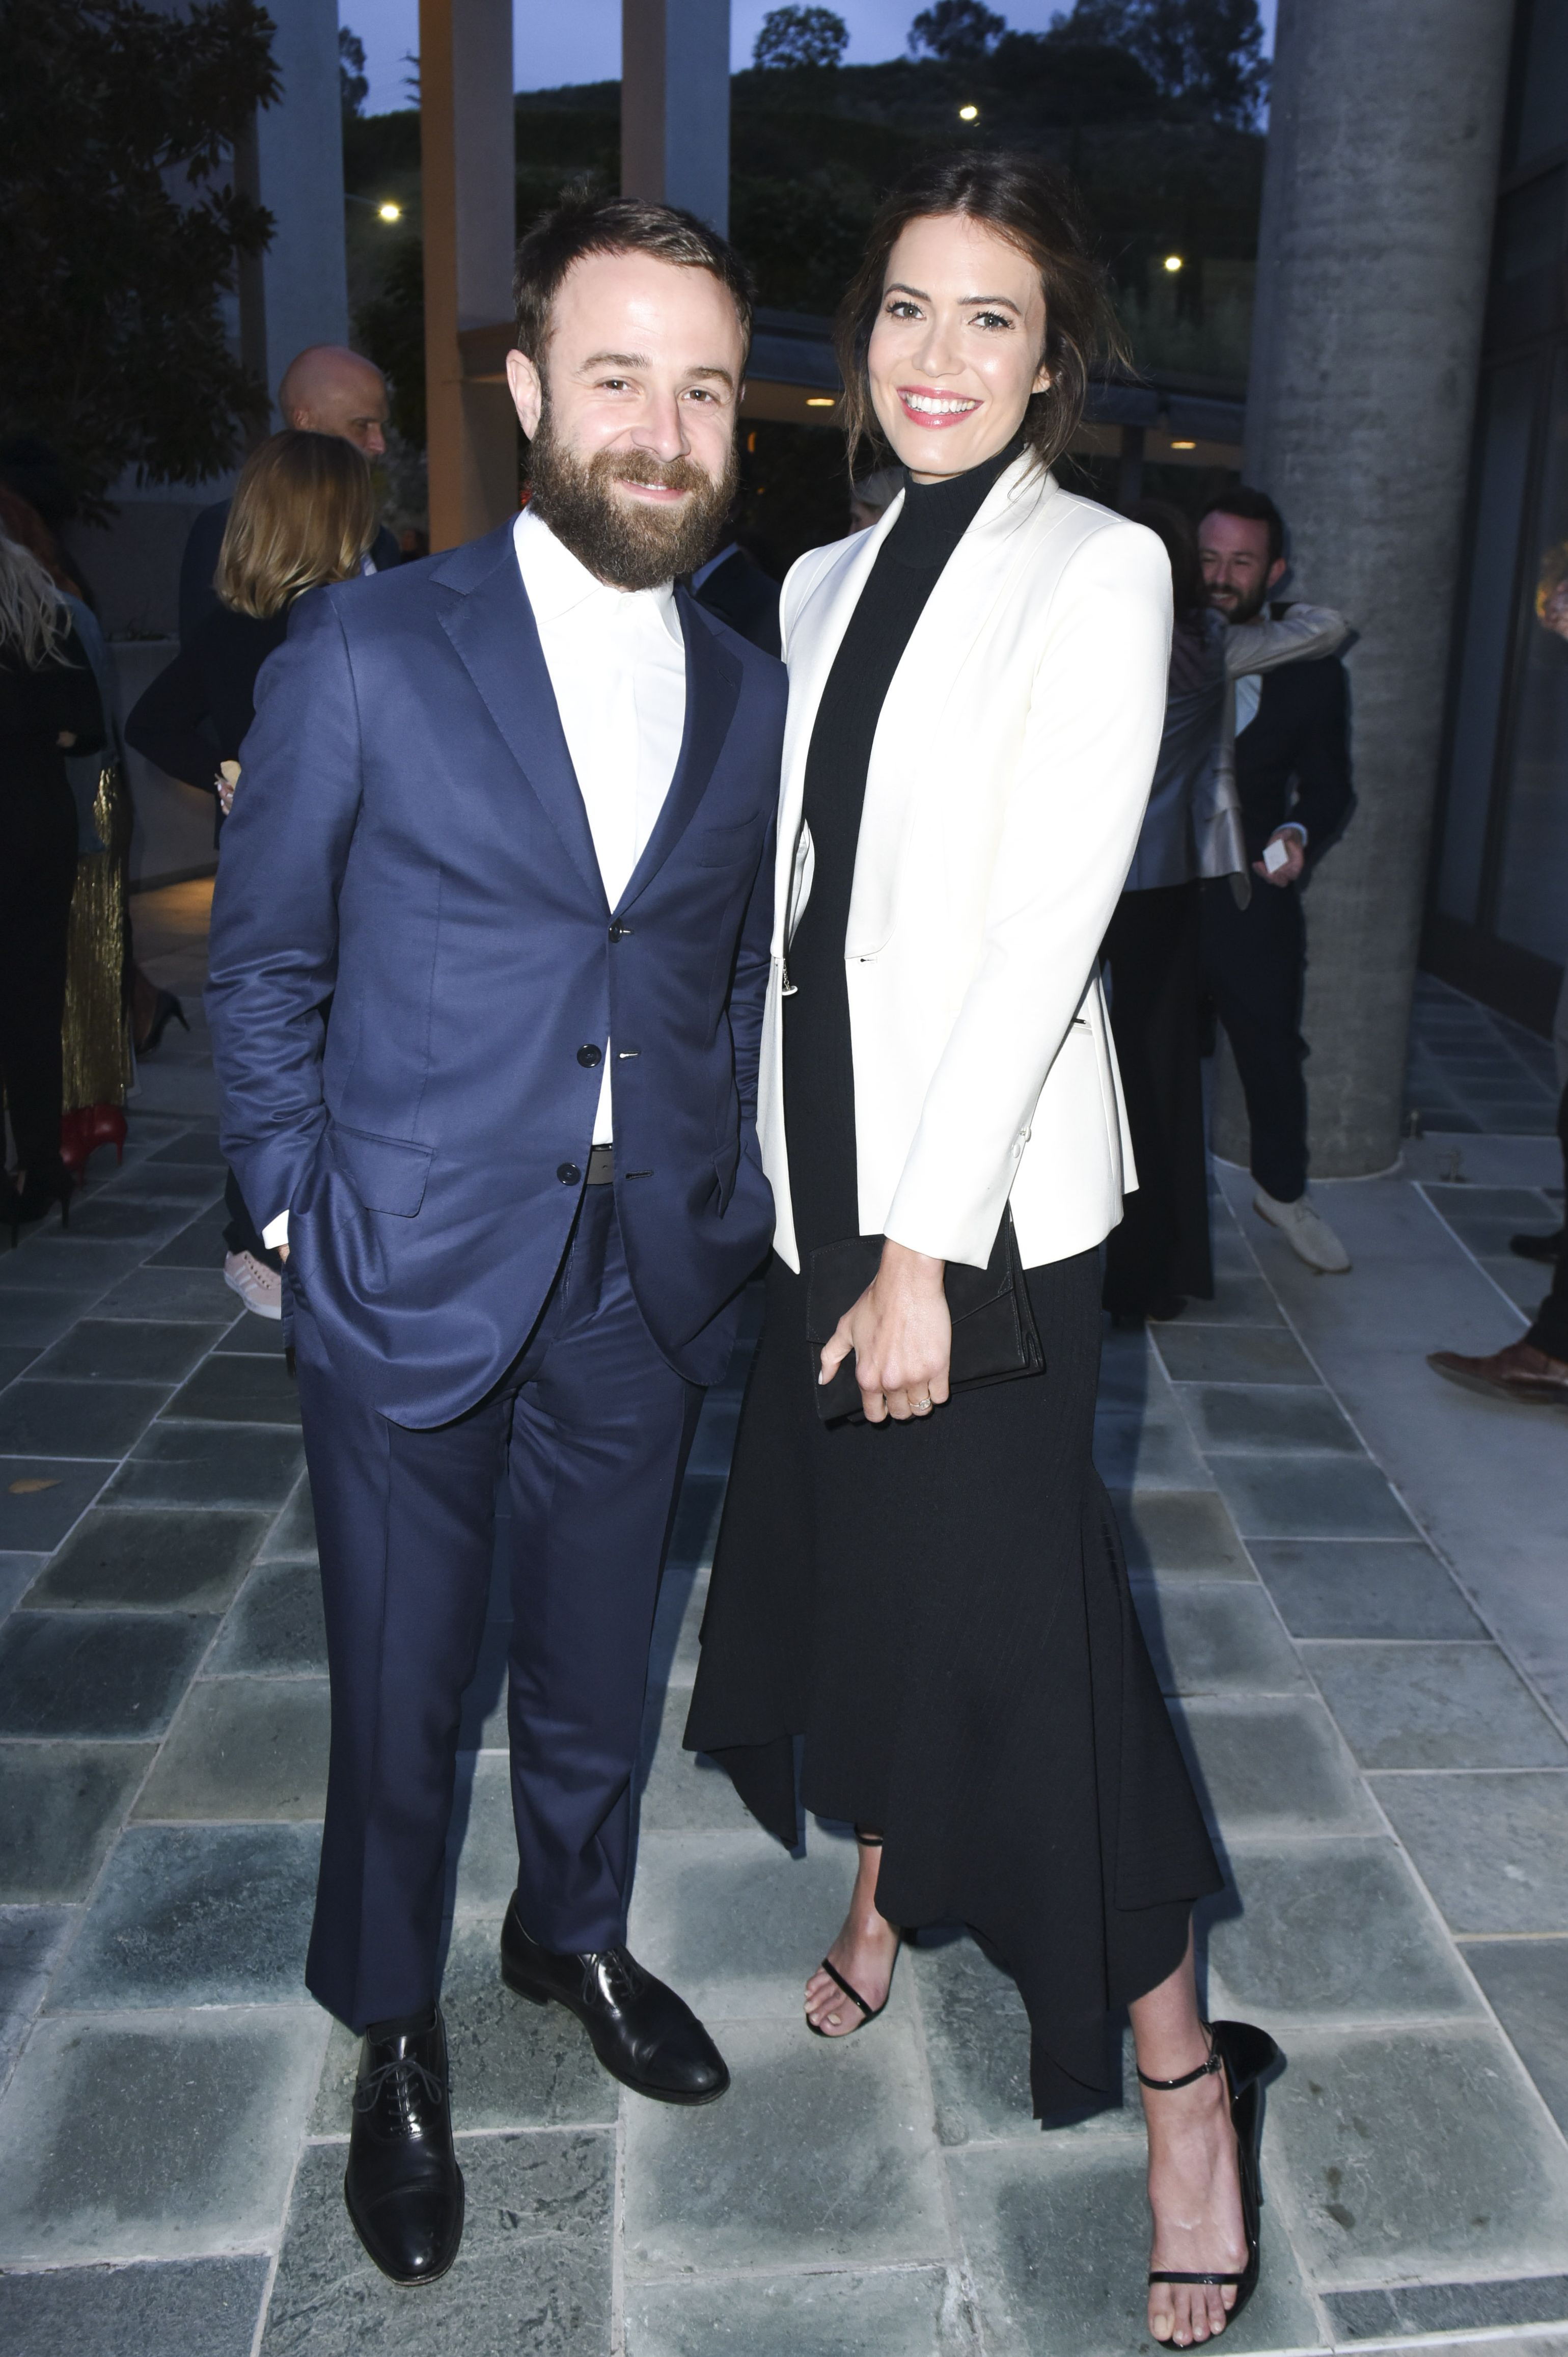 Mandy Moore and Taylor Goldsmith met after she fangirled on Instagram.